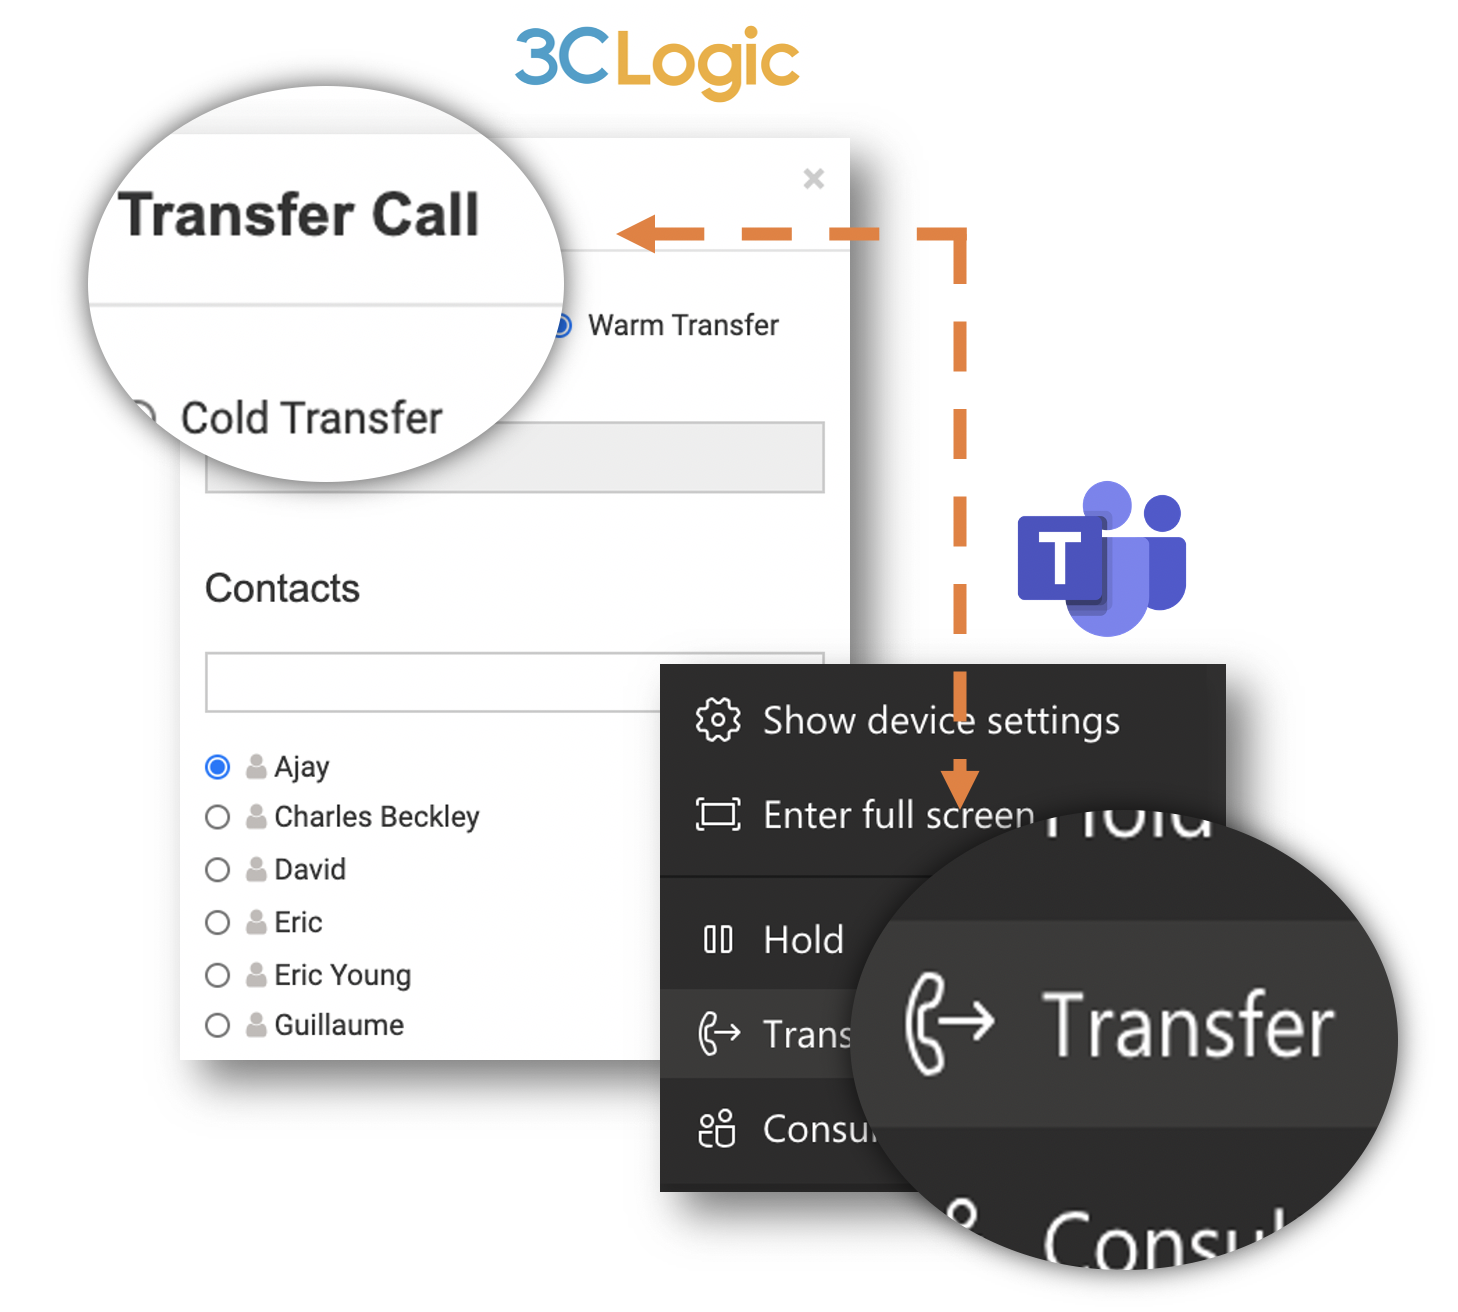 Transfer calls between 3CLogic and Microsoft Teams